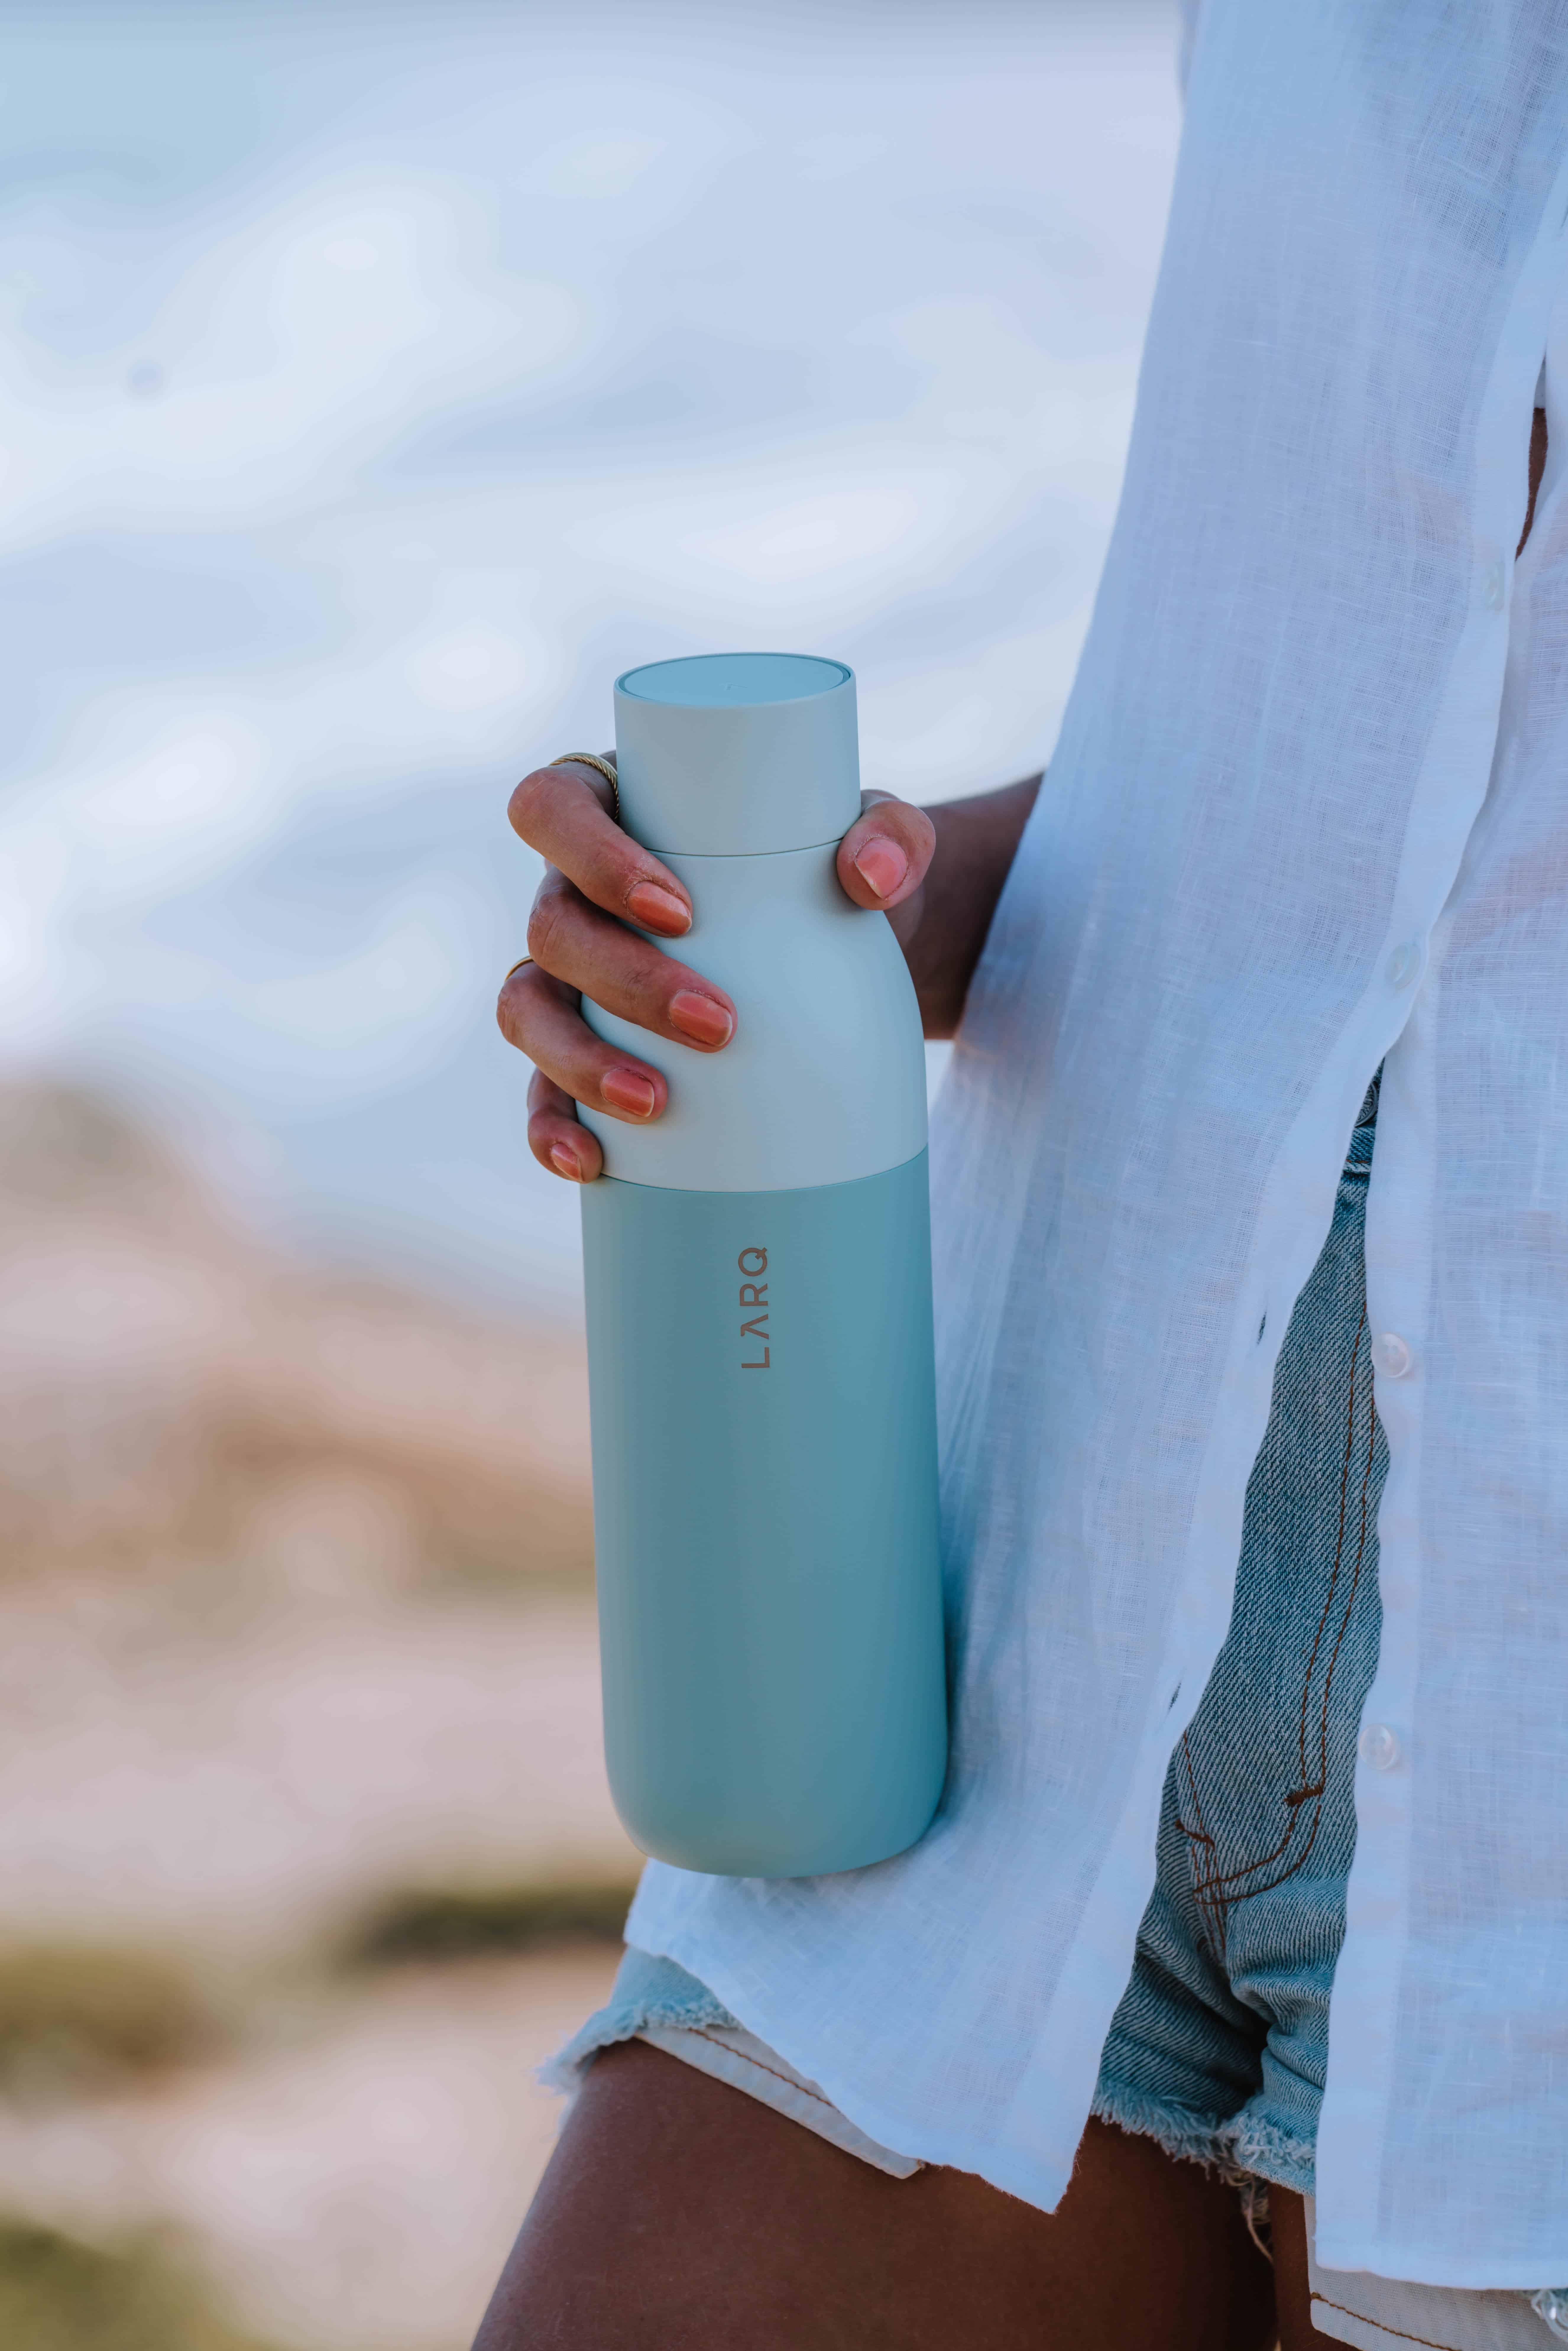 Plastic free reusable self-cleaning water bottle from LARQ